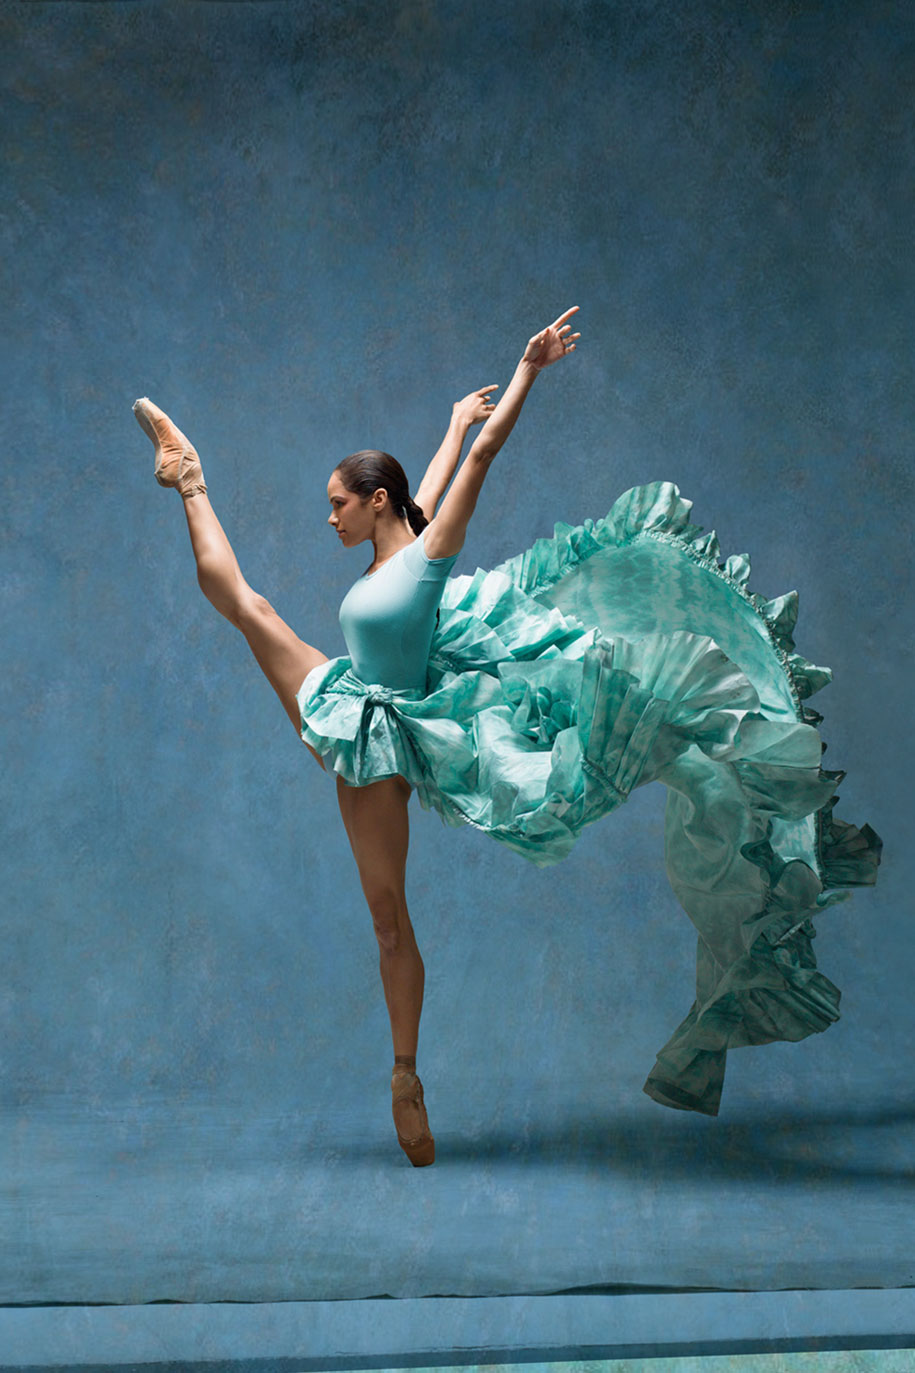 edgar-degas-ballet-dancer-painting-photoshoot-misty-copeland-harpers-bazaar-6